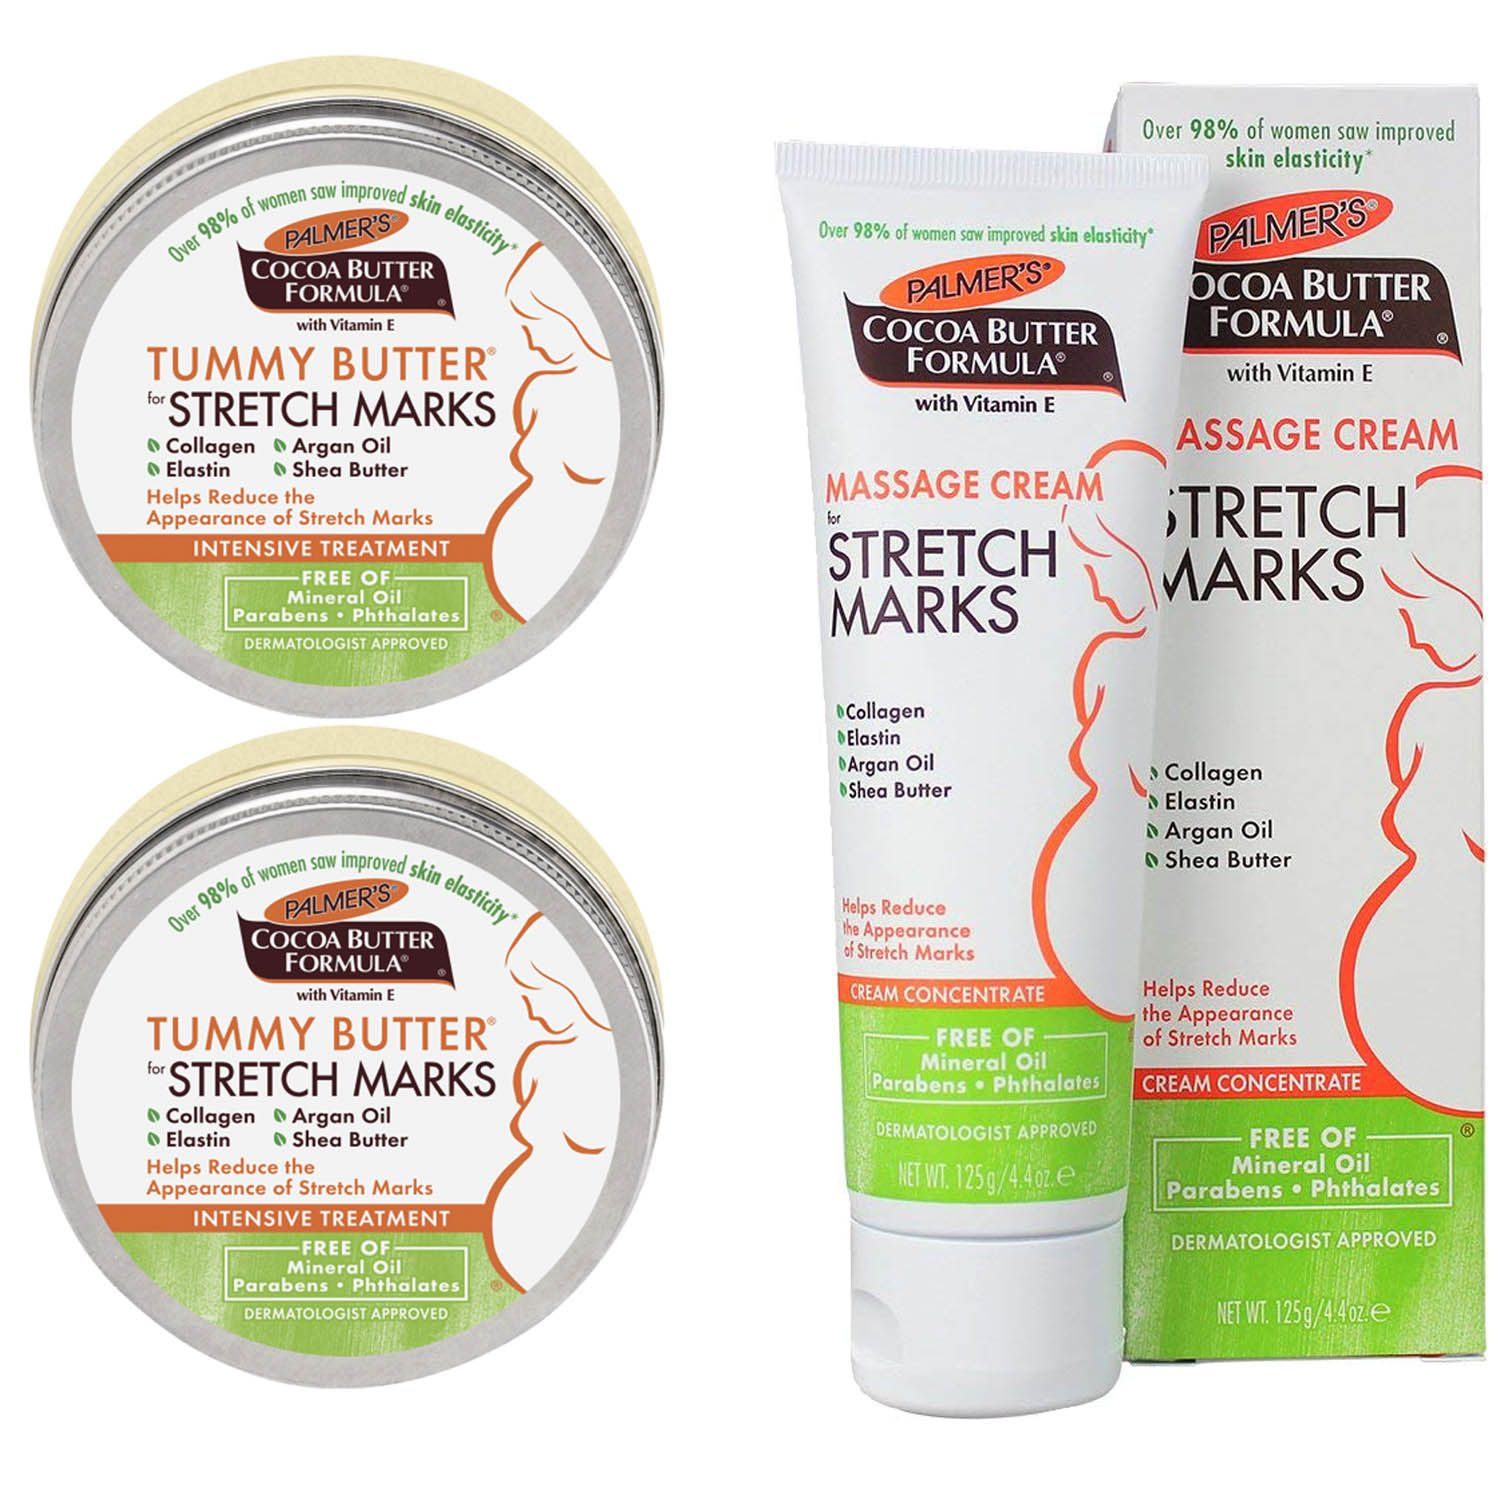 2 Creme Palmers Cocoa Tummy Butter Stretch + 1 Cocoa Butter